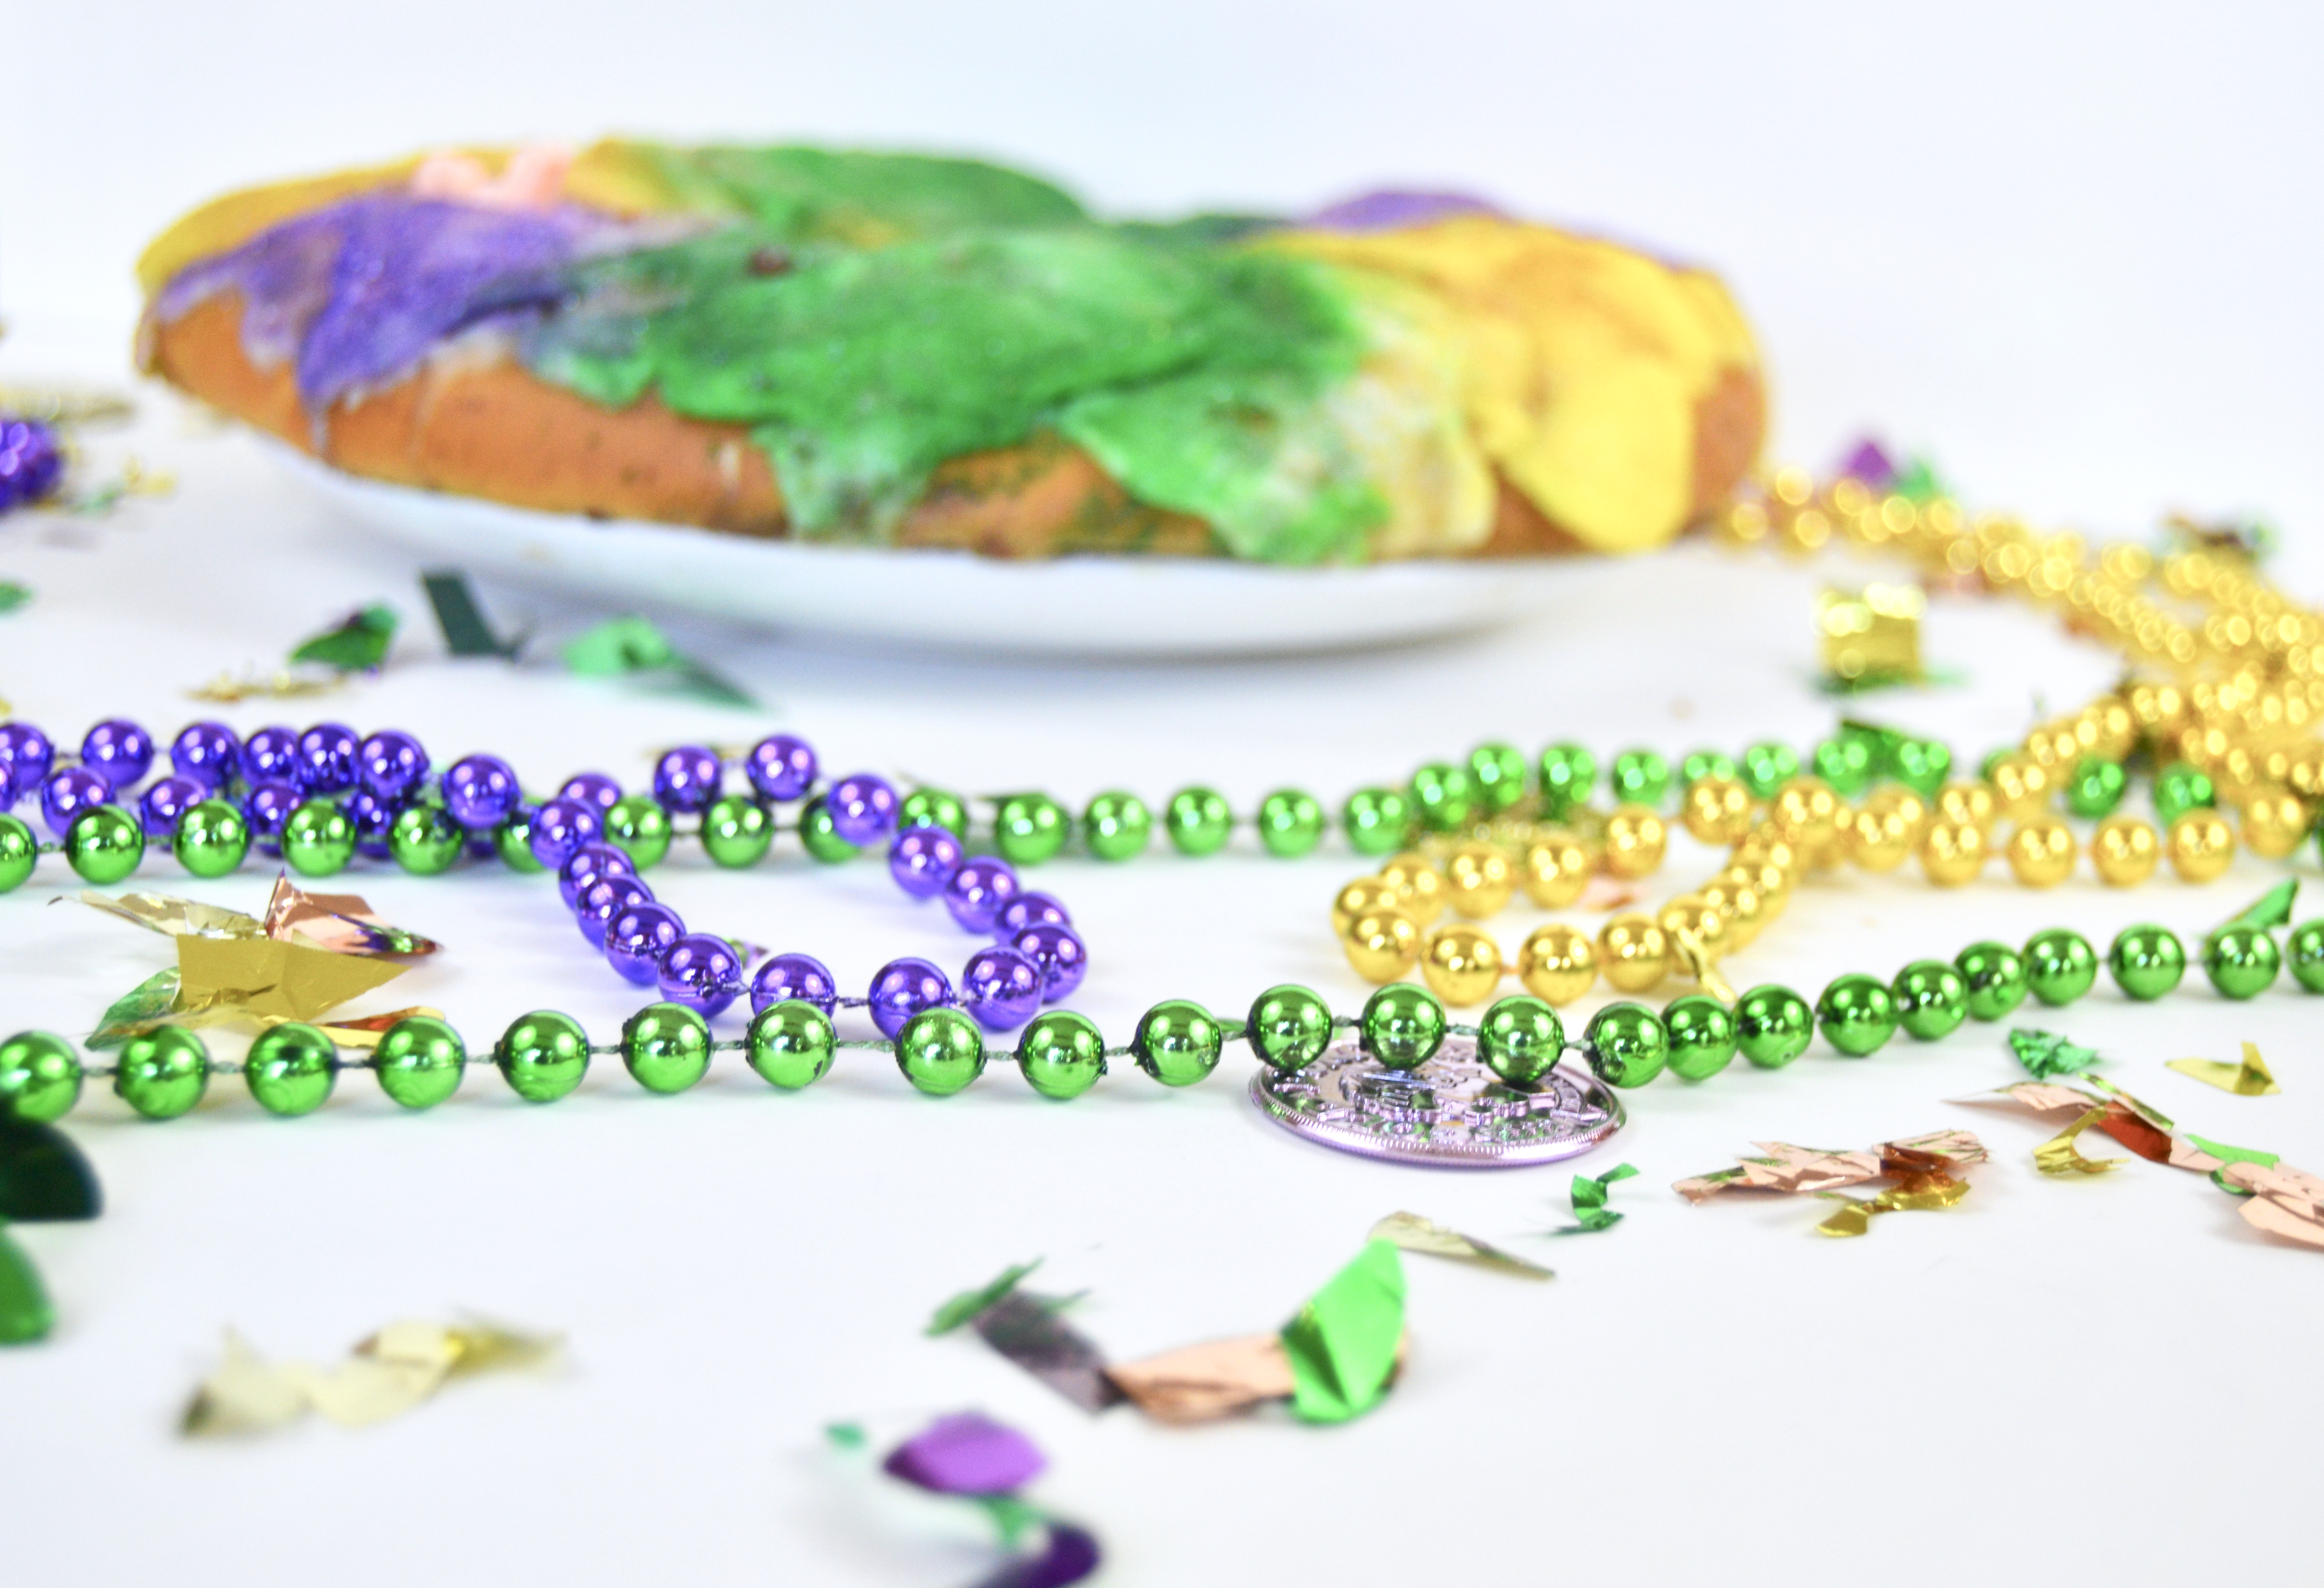 Looking for a king cake this Mardi Gras season? Look no further! Check out the ULTIMATE list of where to find the best king cakes here in Baton Rouge and the surrounding area. From traditional to crazy, you'll find it all here!